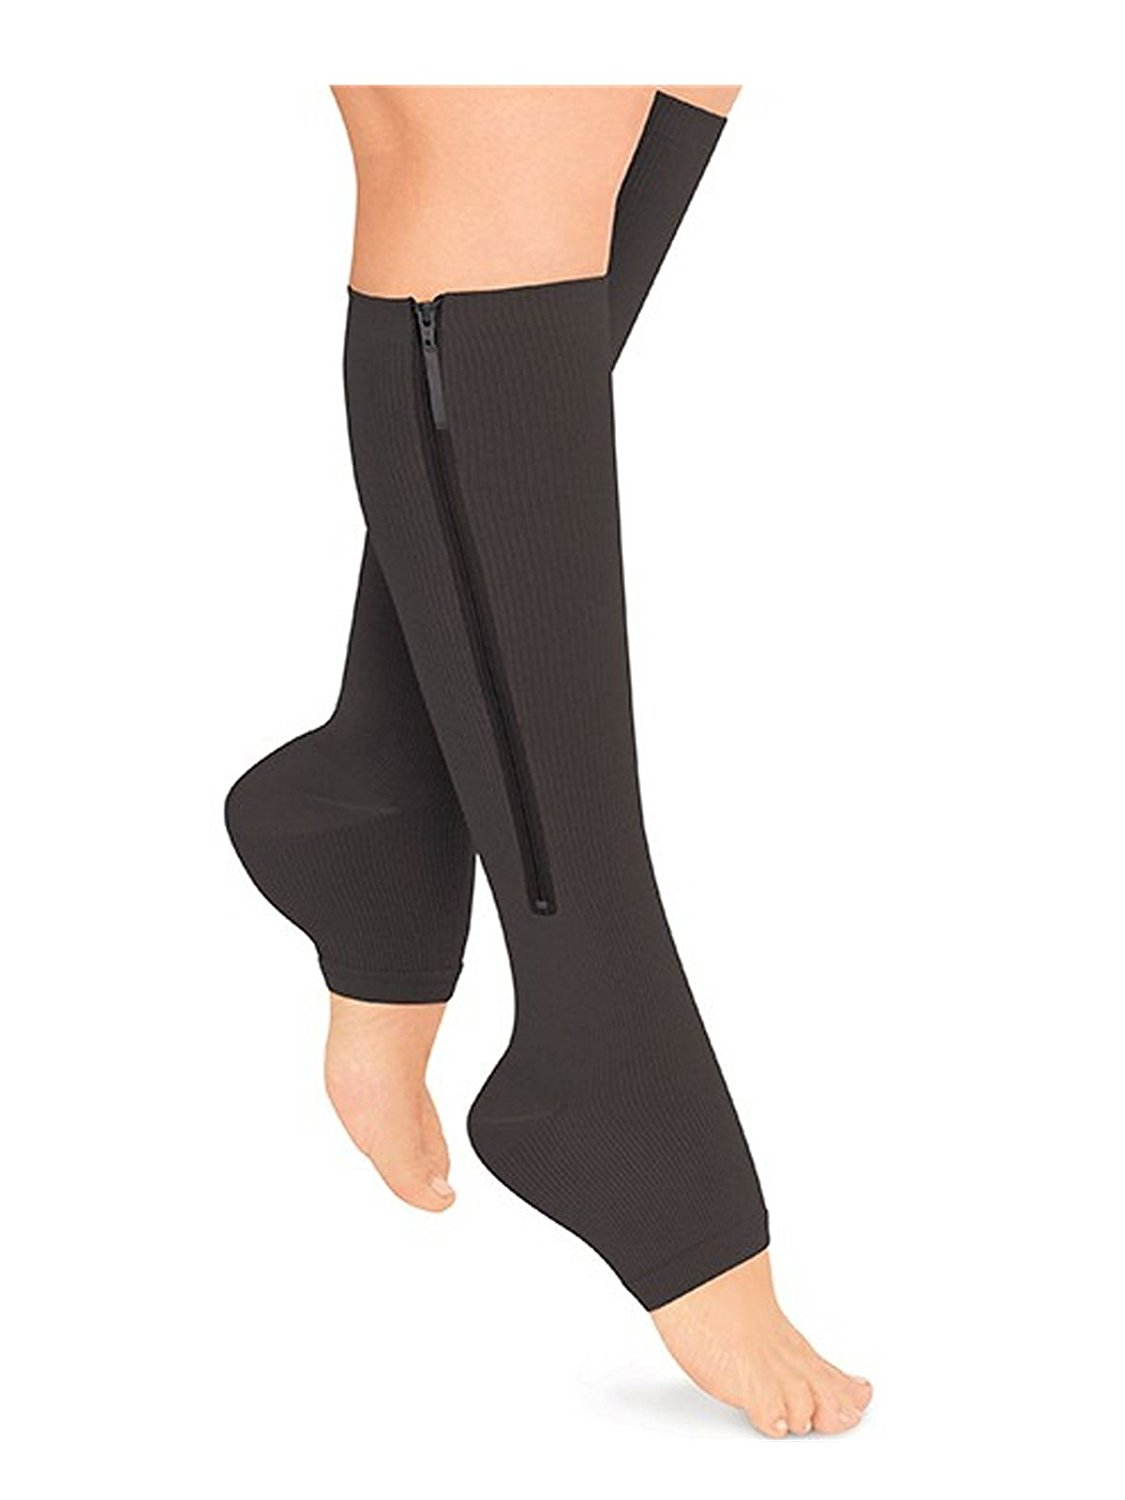 c2538af2623 Get Quotations · Starmace Open Toe Zipper Compression Grade Leg Circulation  Reduce Fatigue Swelling Medical Recovery Support Stockings Socks